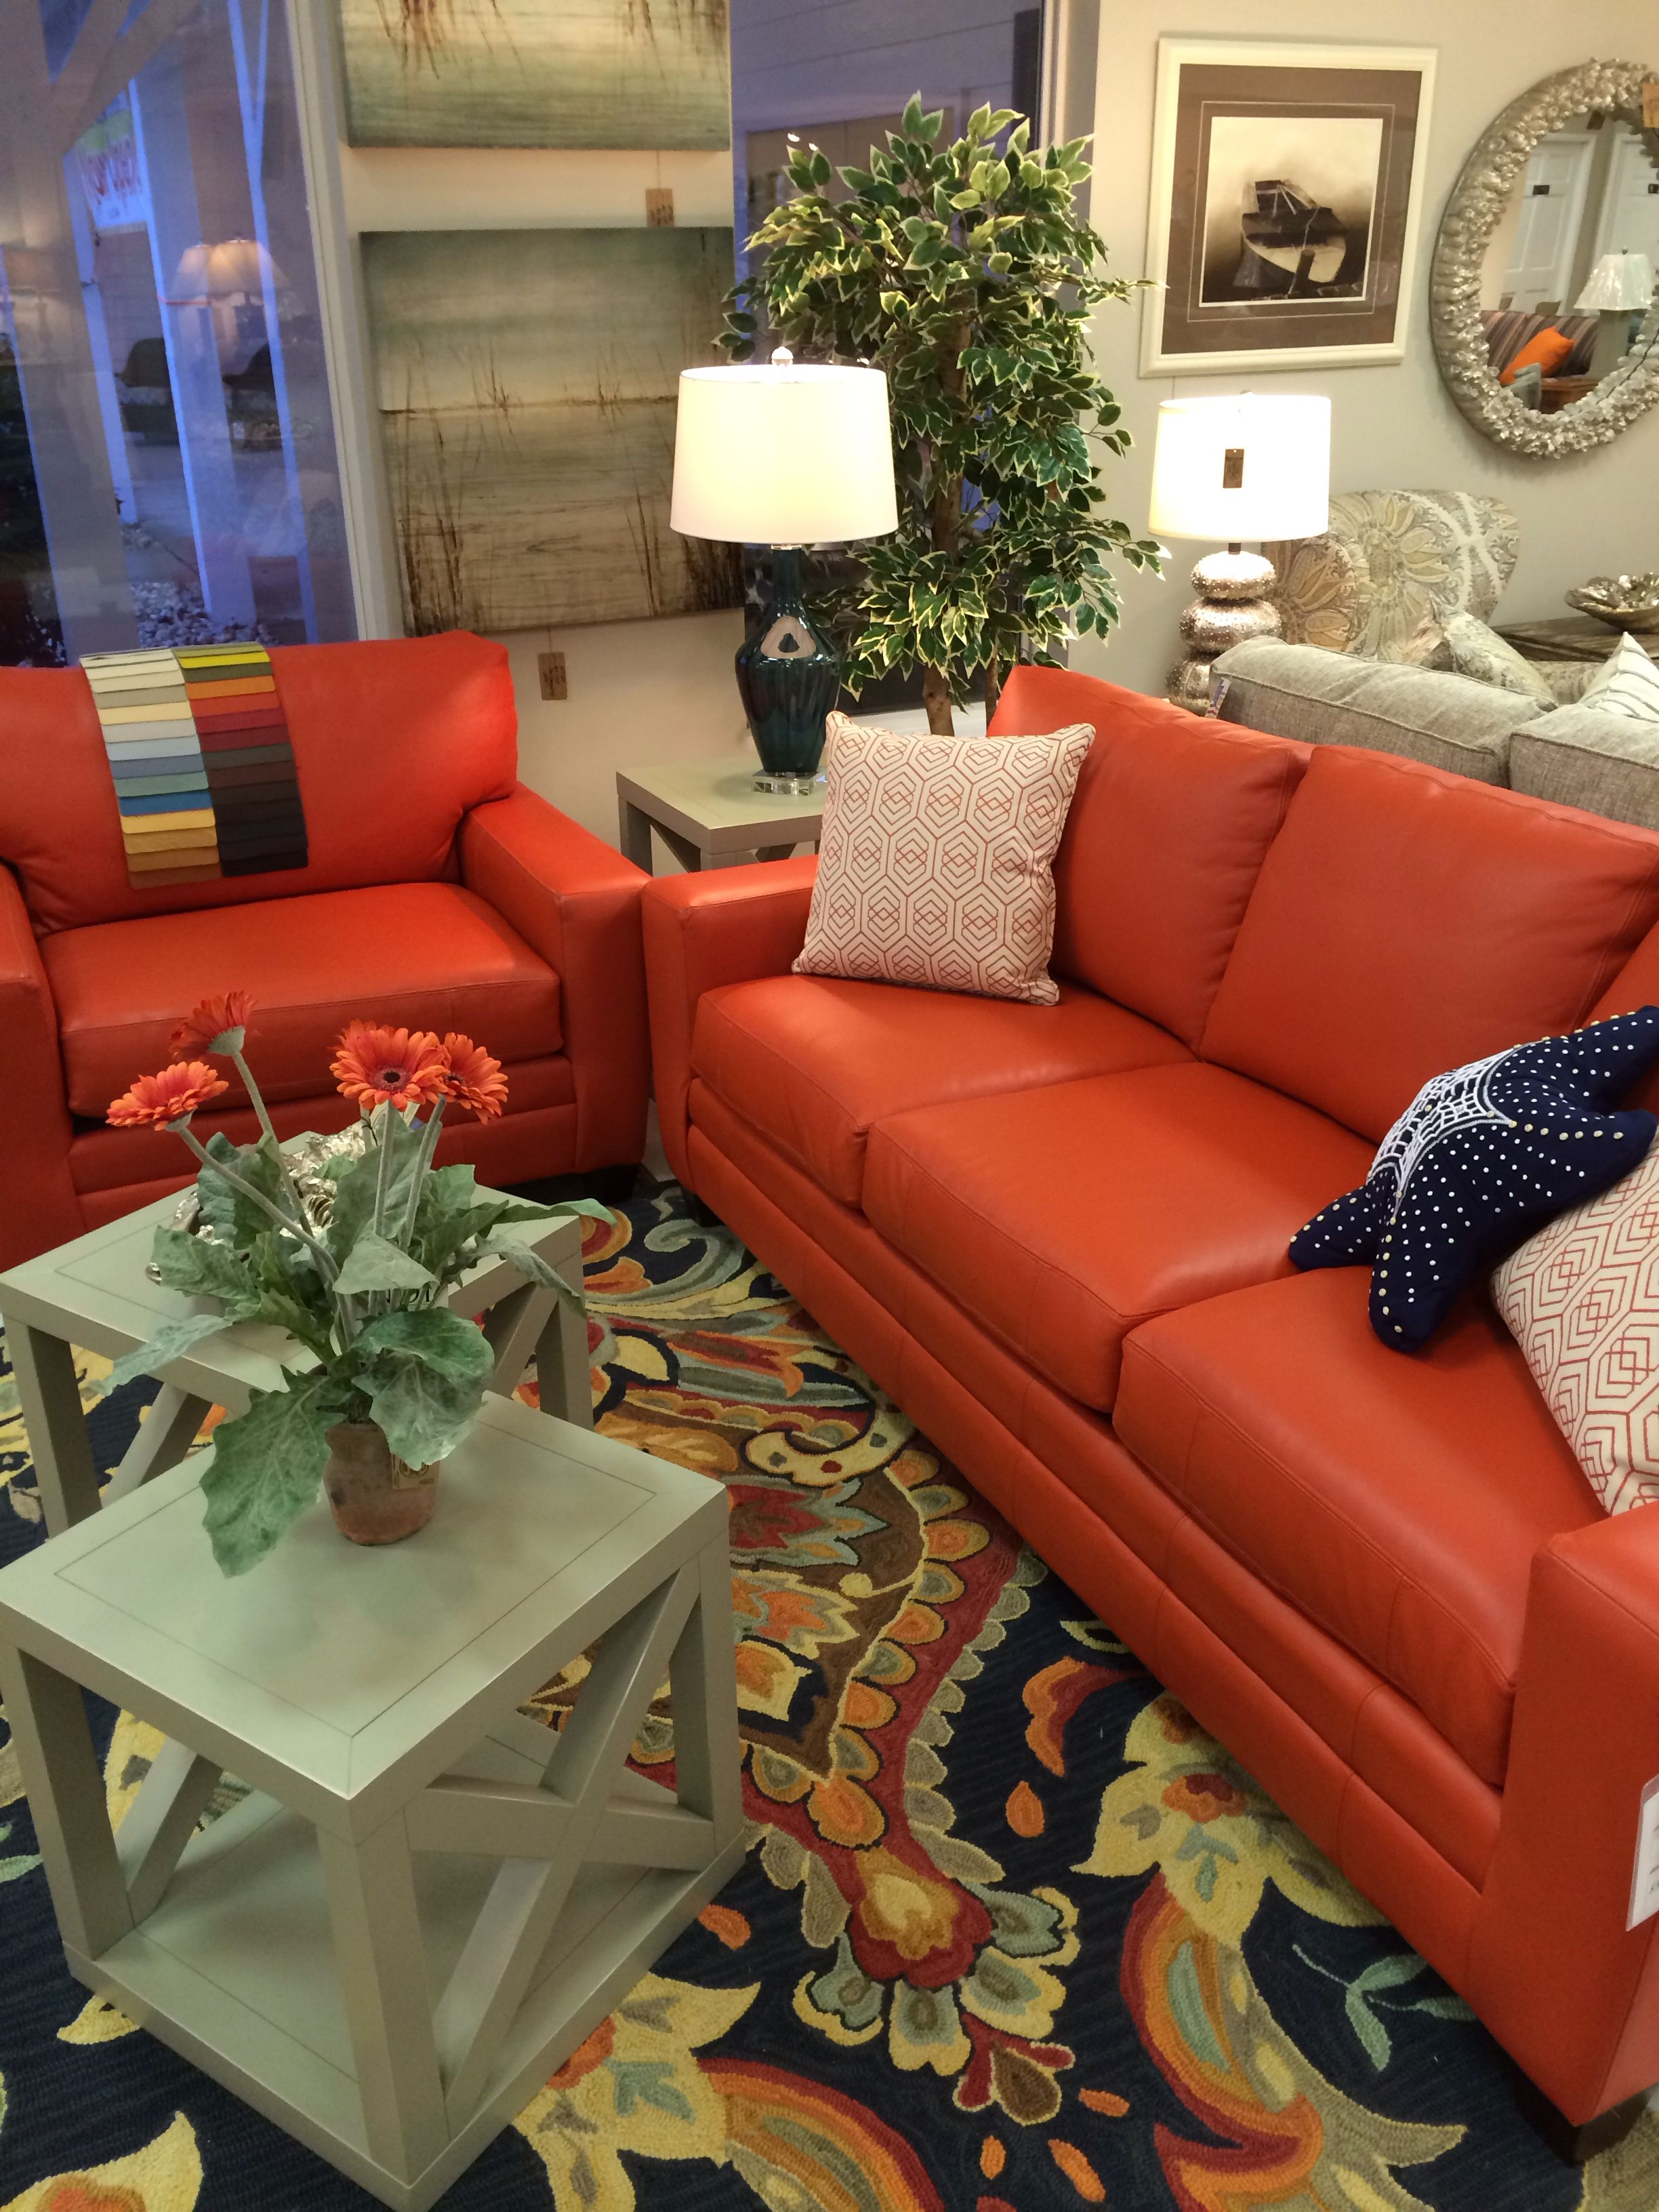 A Juicy Papaya Orange Leather Sofa Oversized Chair Waterfall Of Colors To Choose